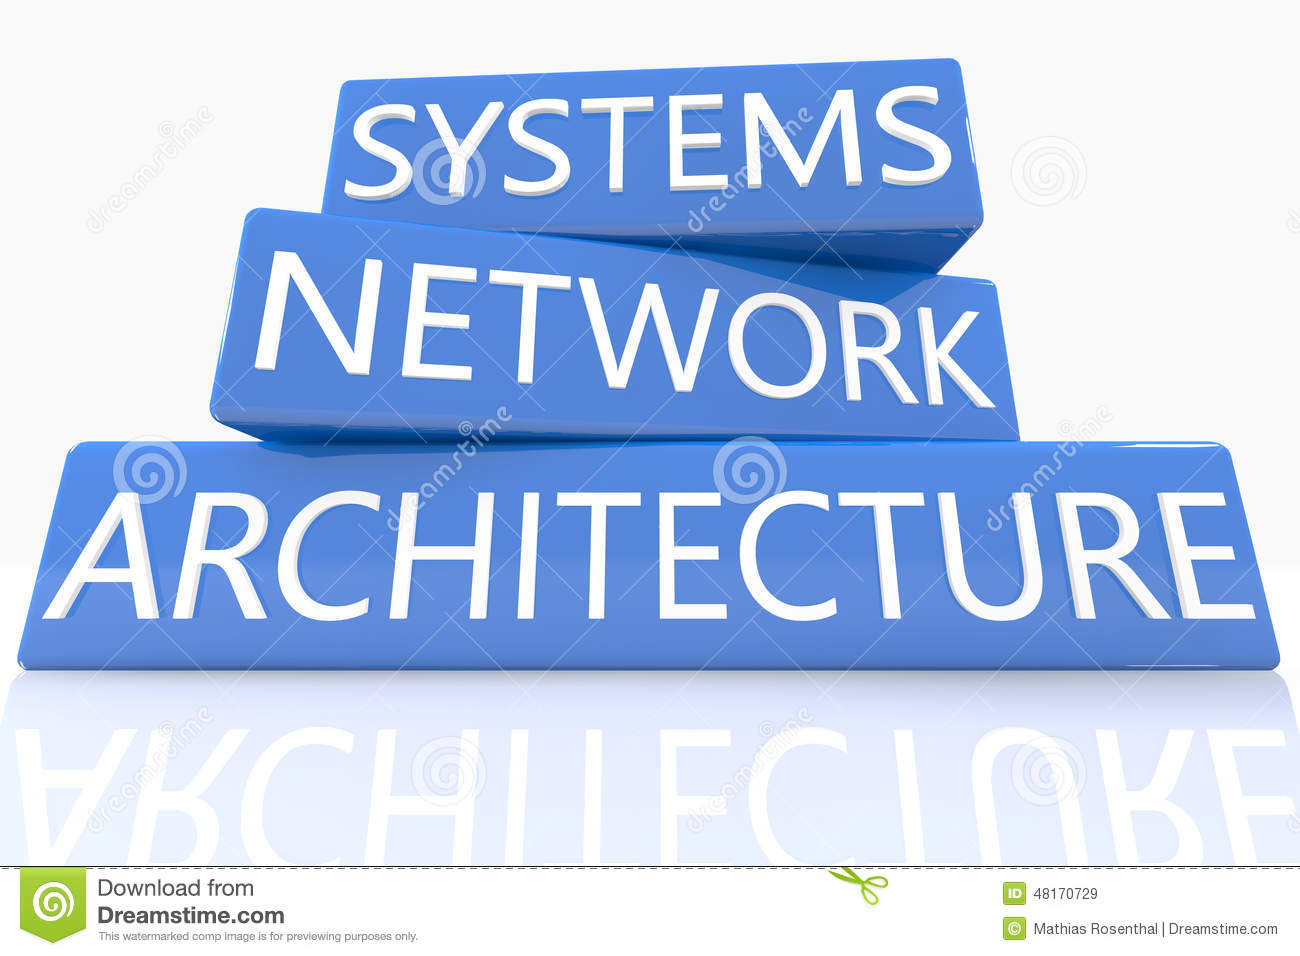 Systems Network Architecture S...